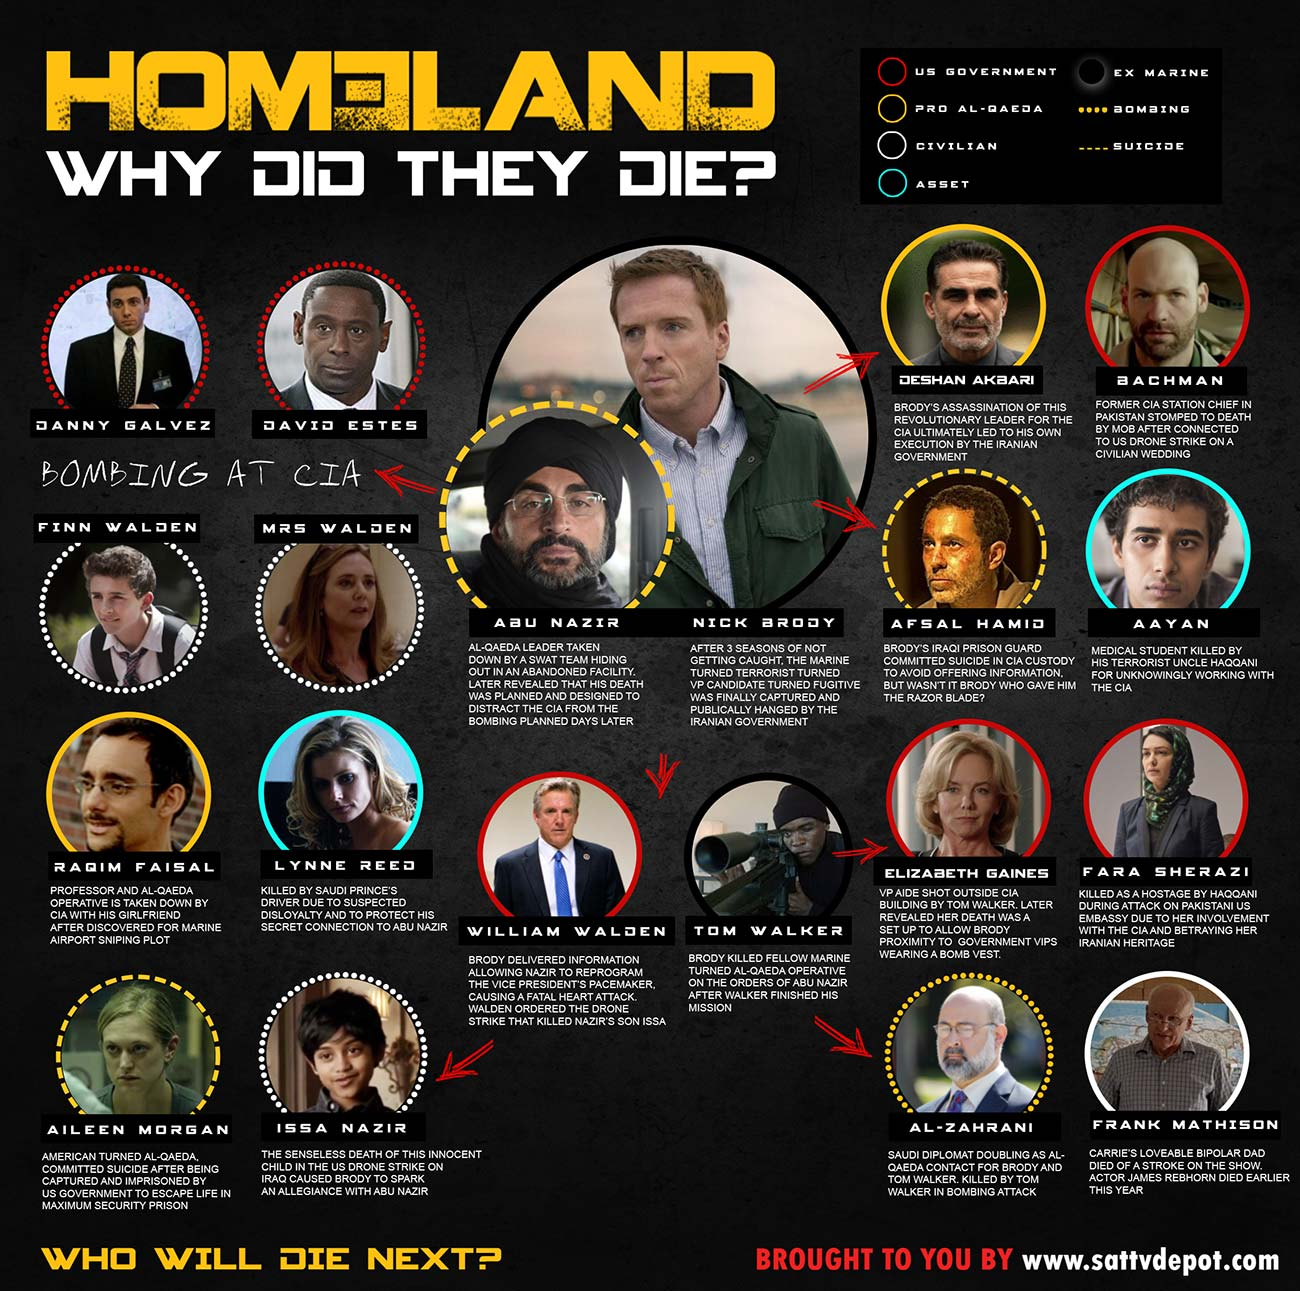 homeland-why-did-they-die-death-chart-infographic-plaza